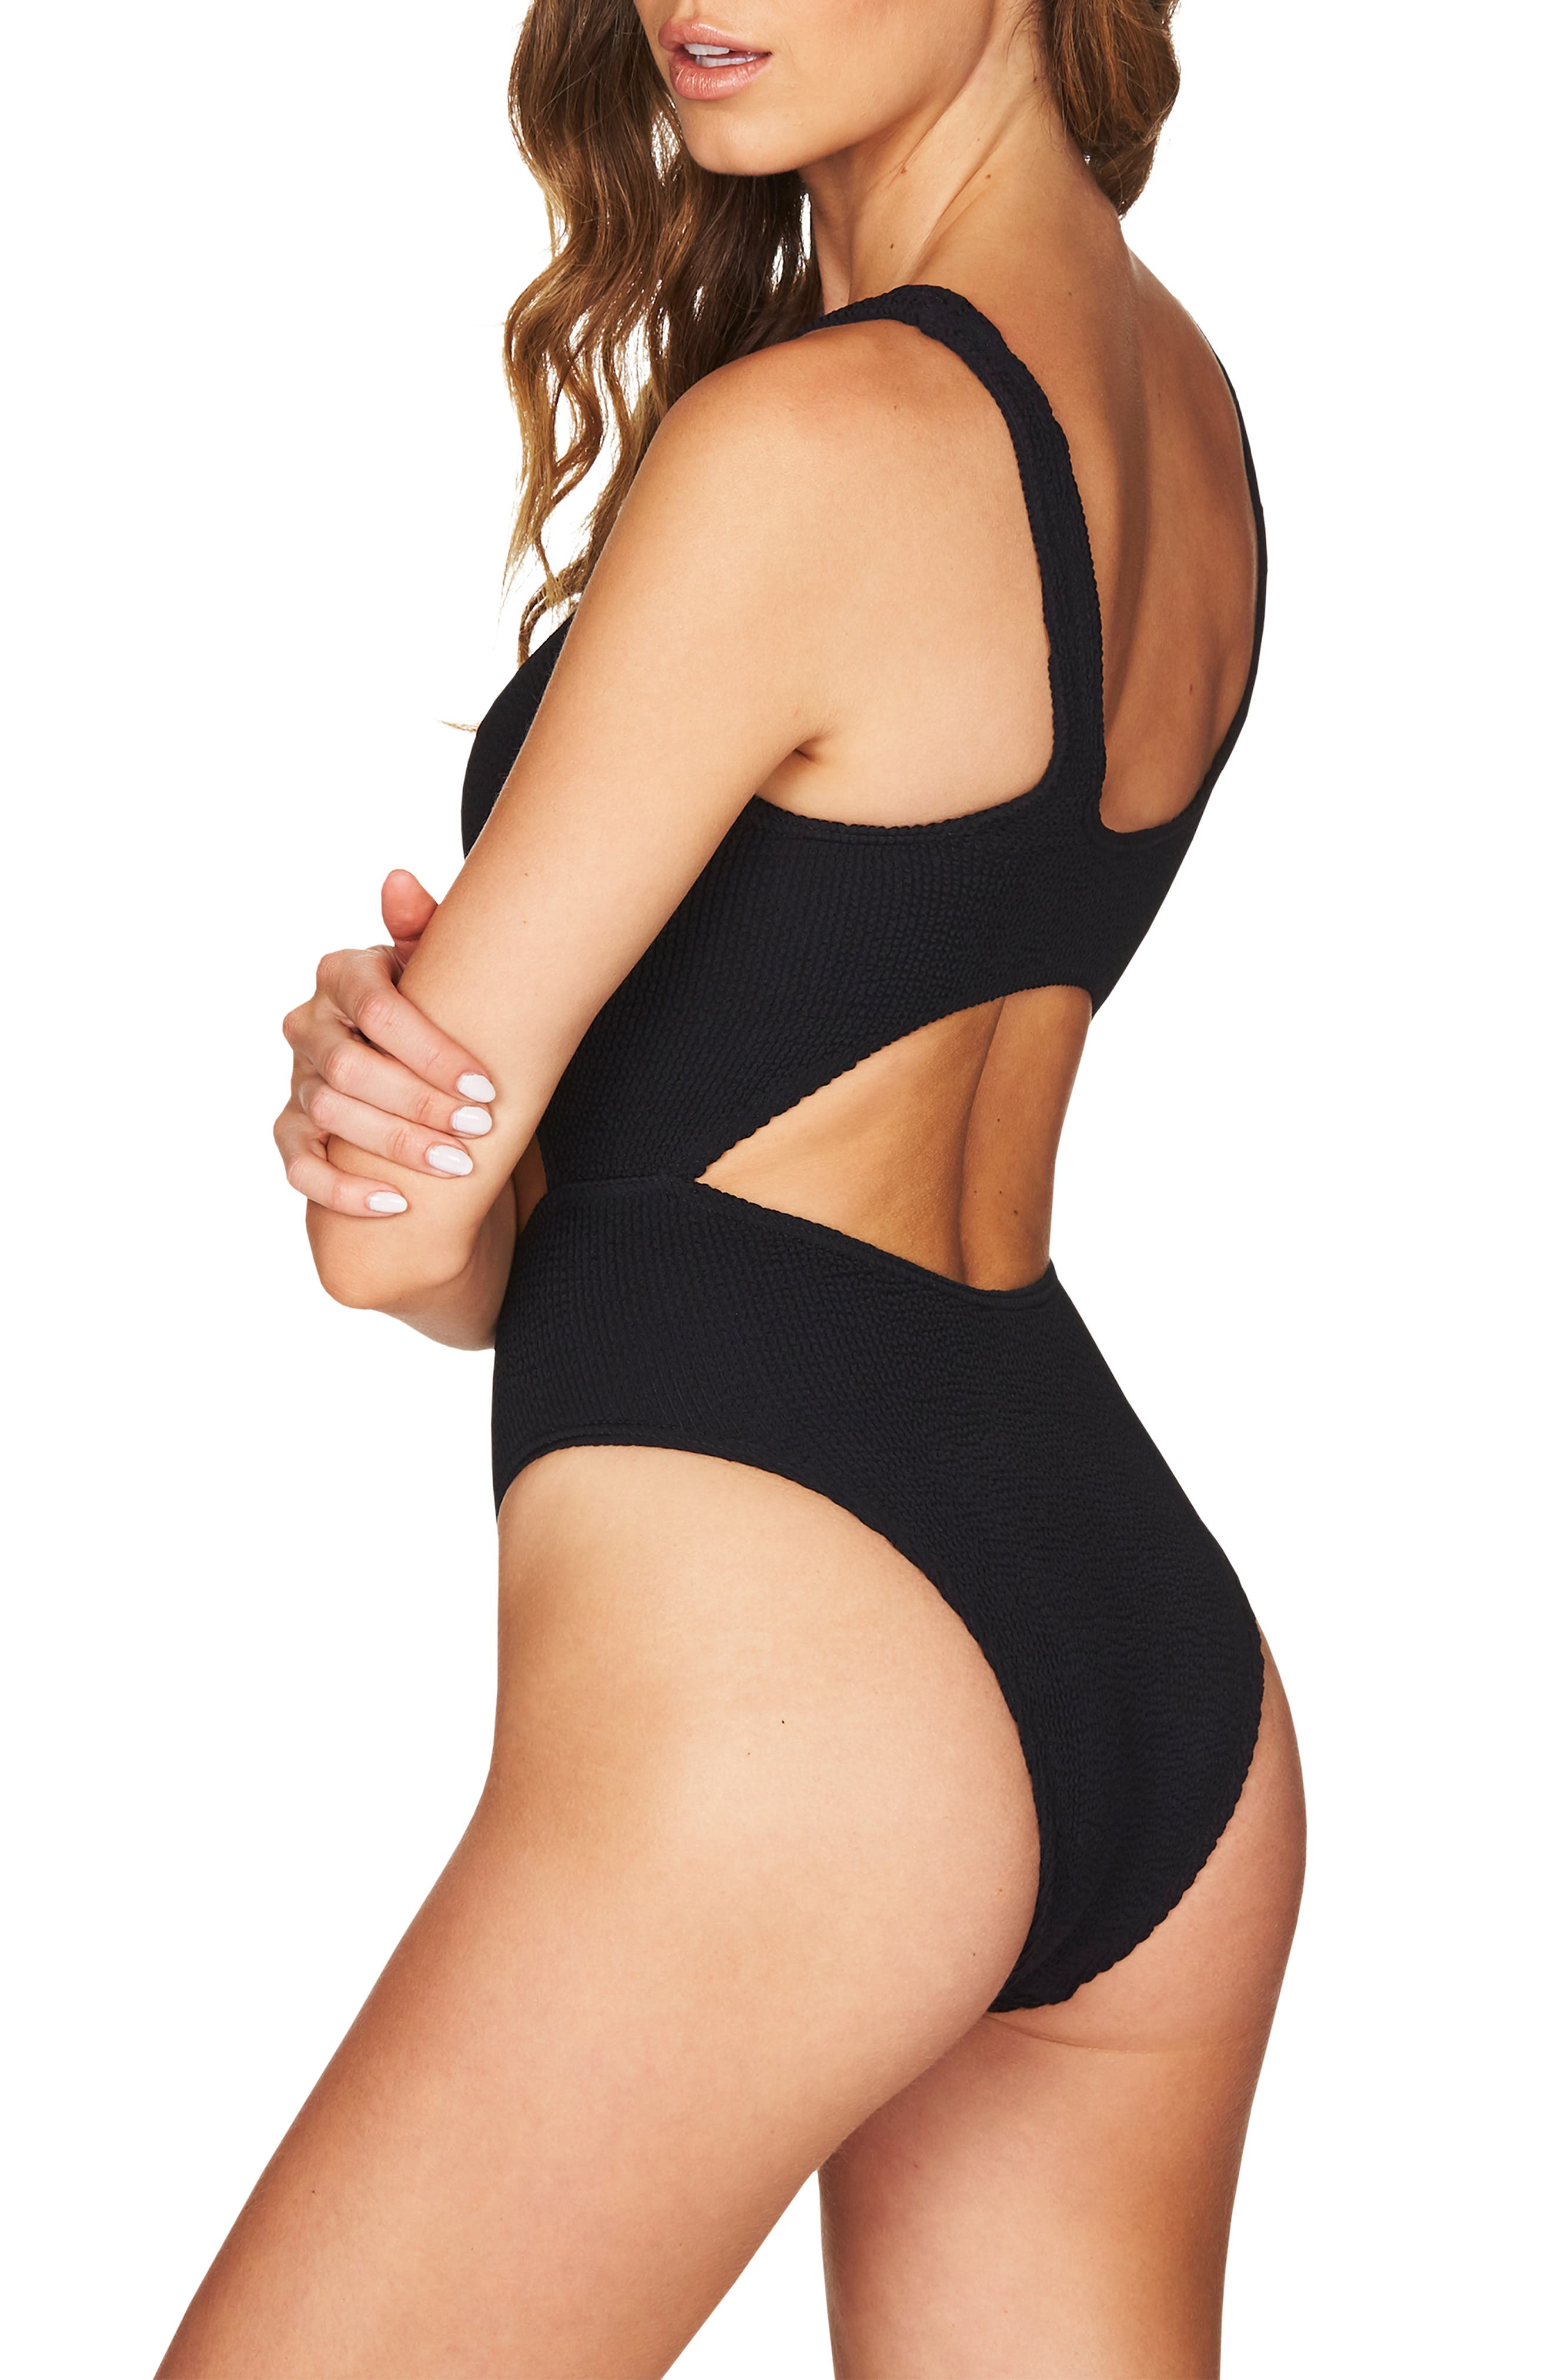 BOUND BY BOND-EYE, The Mishy High Cut Ribbed One-Piece Swimsuit, Alternate thumbnail 2, color, BLACK